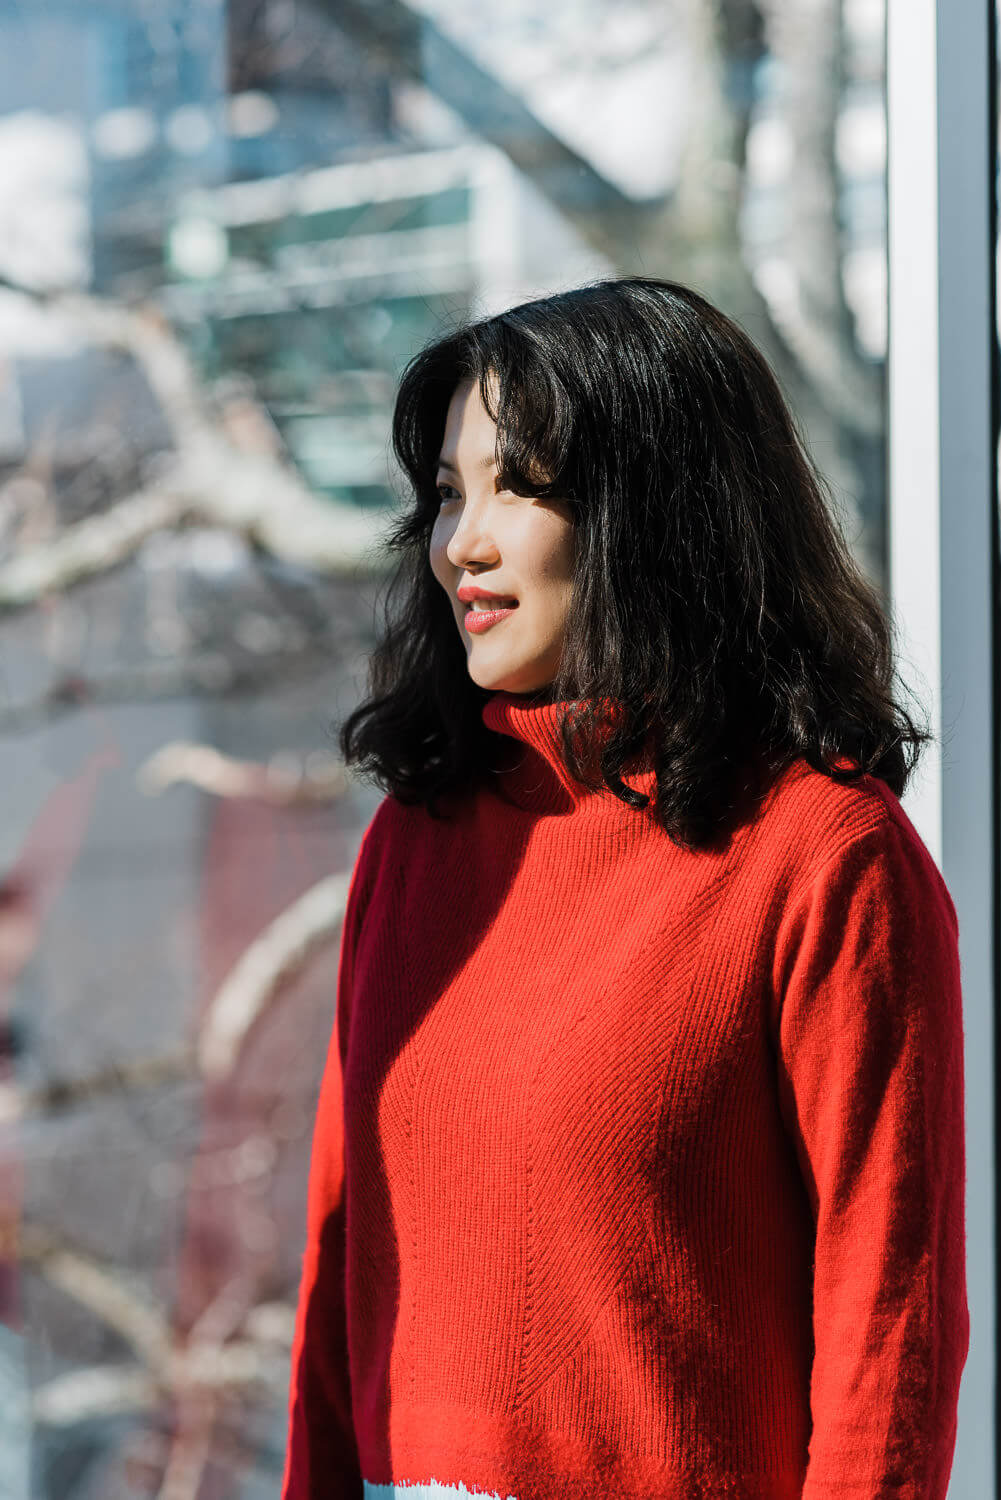 Woman in bright red sweater stands next to window while the sun shines on her face